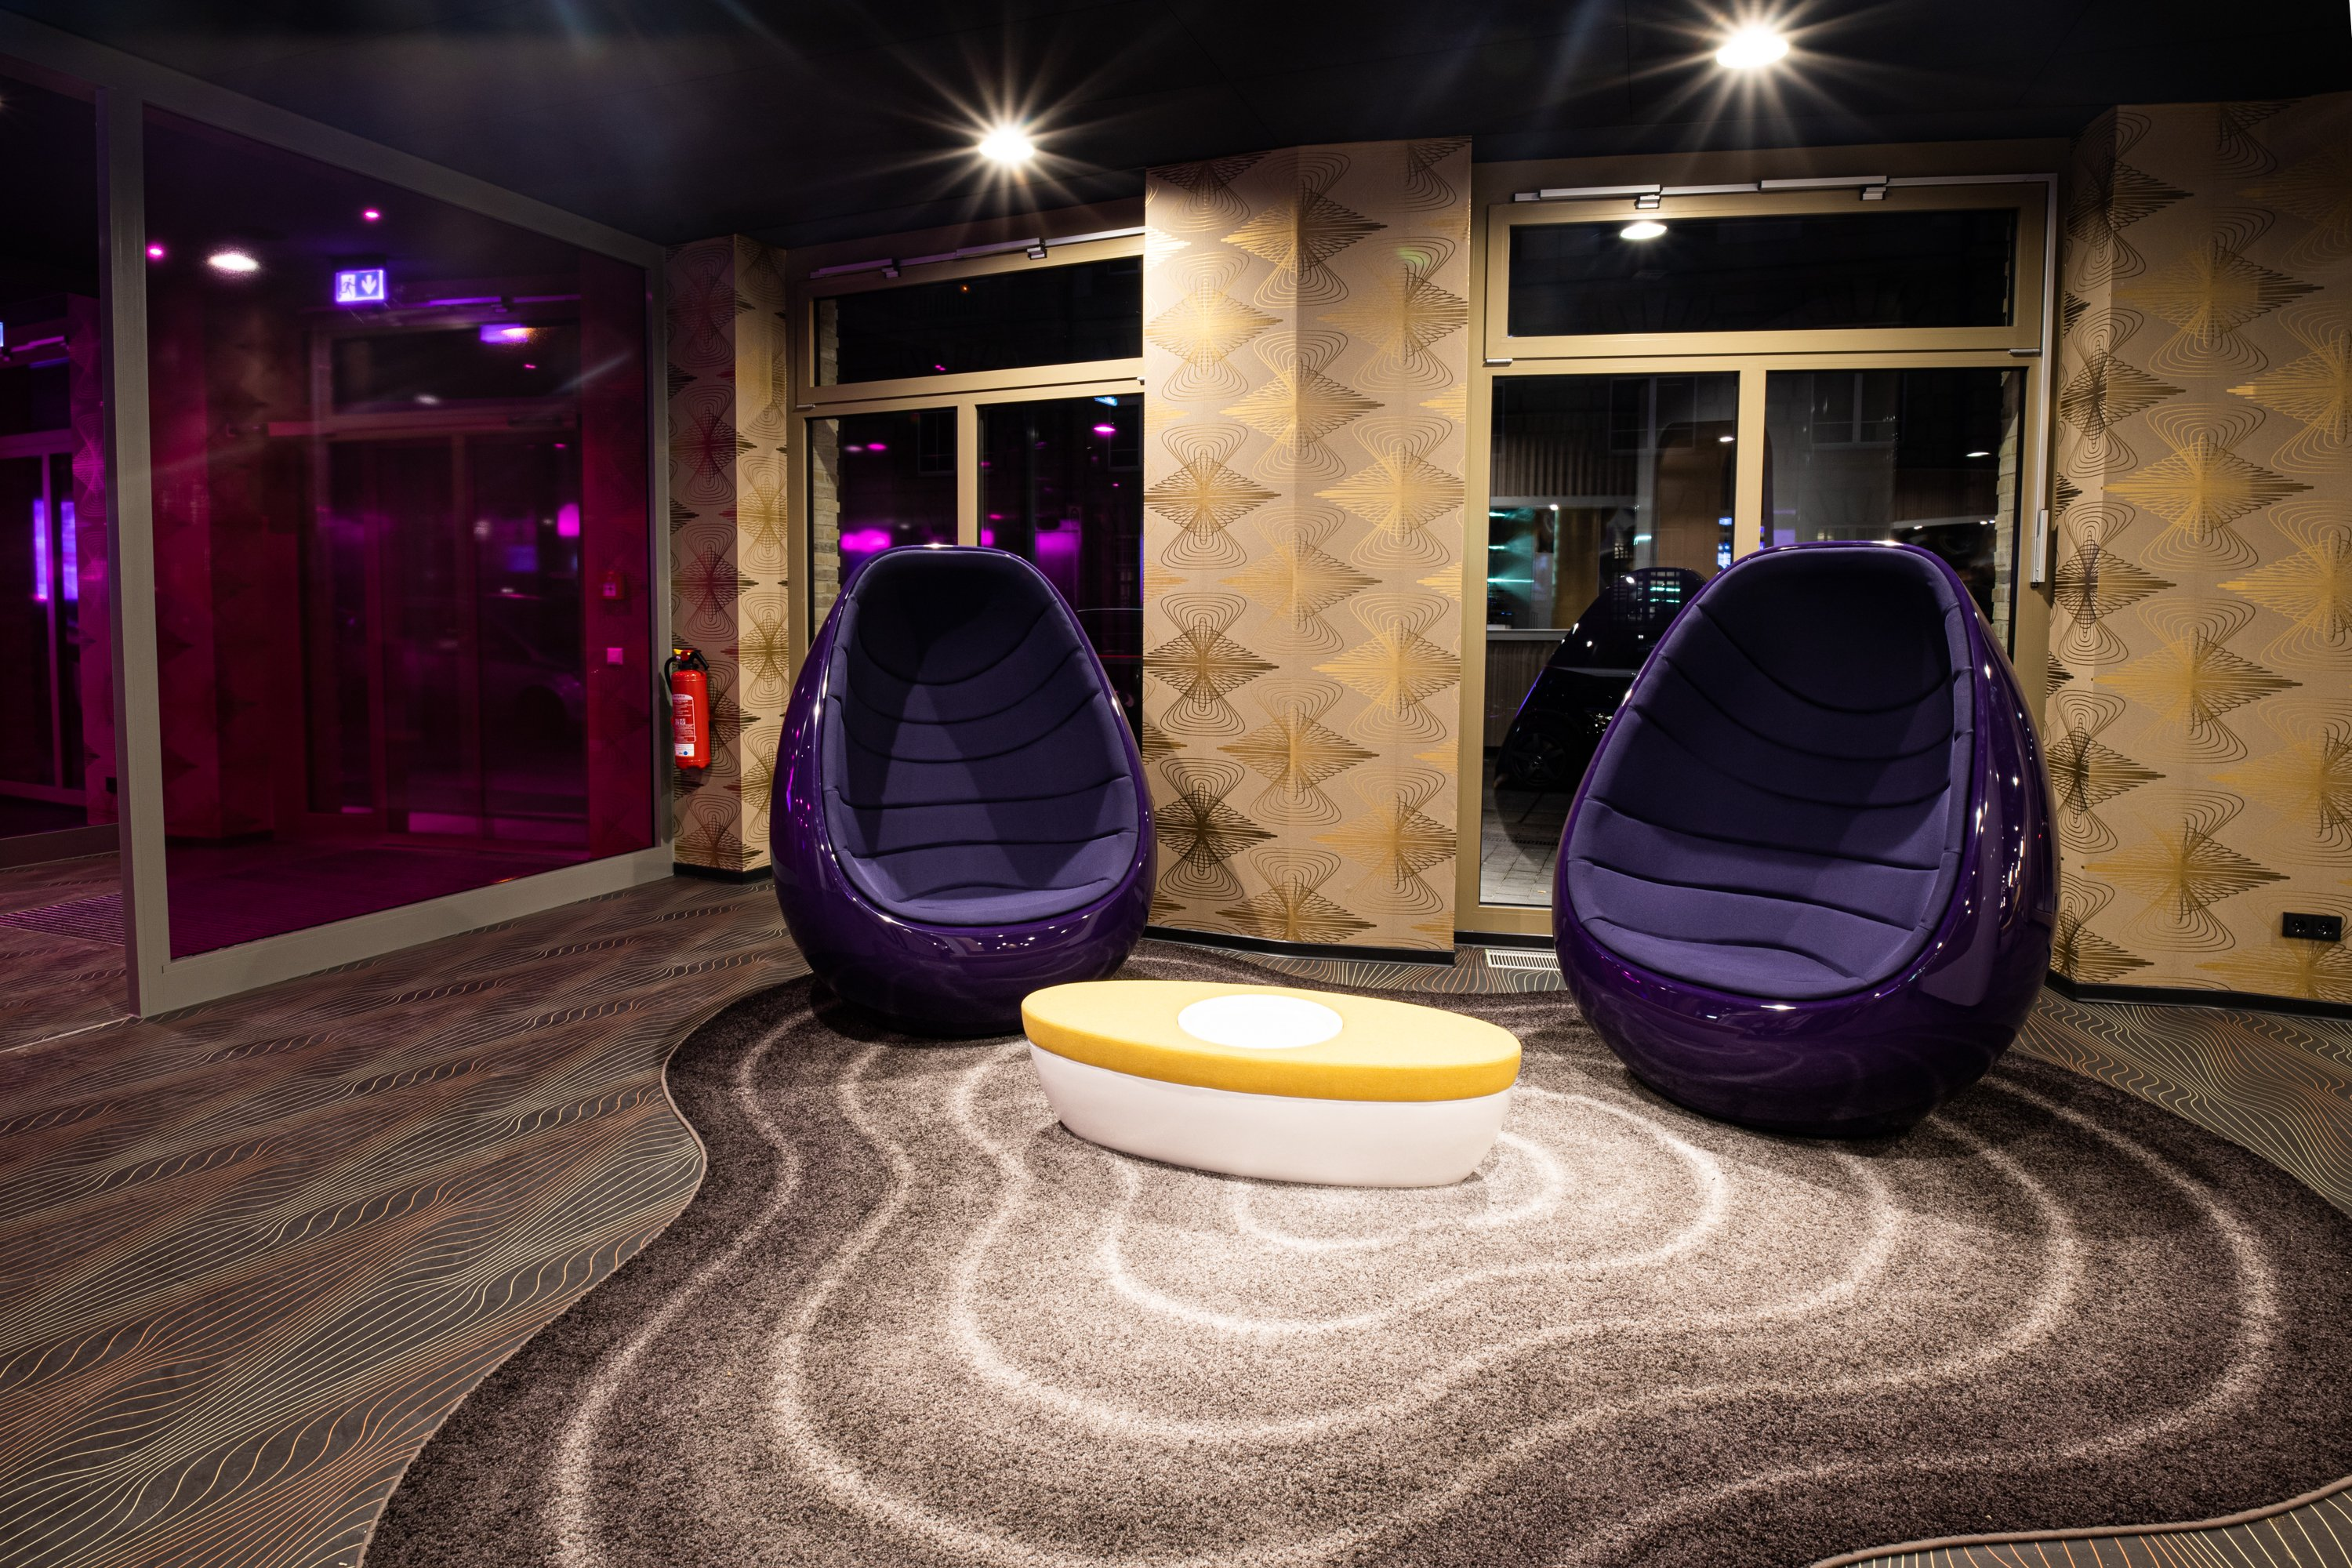 prizeotel Erfurt-City lobby lounge with egg chairs